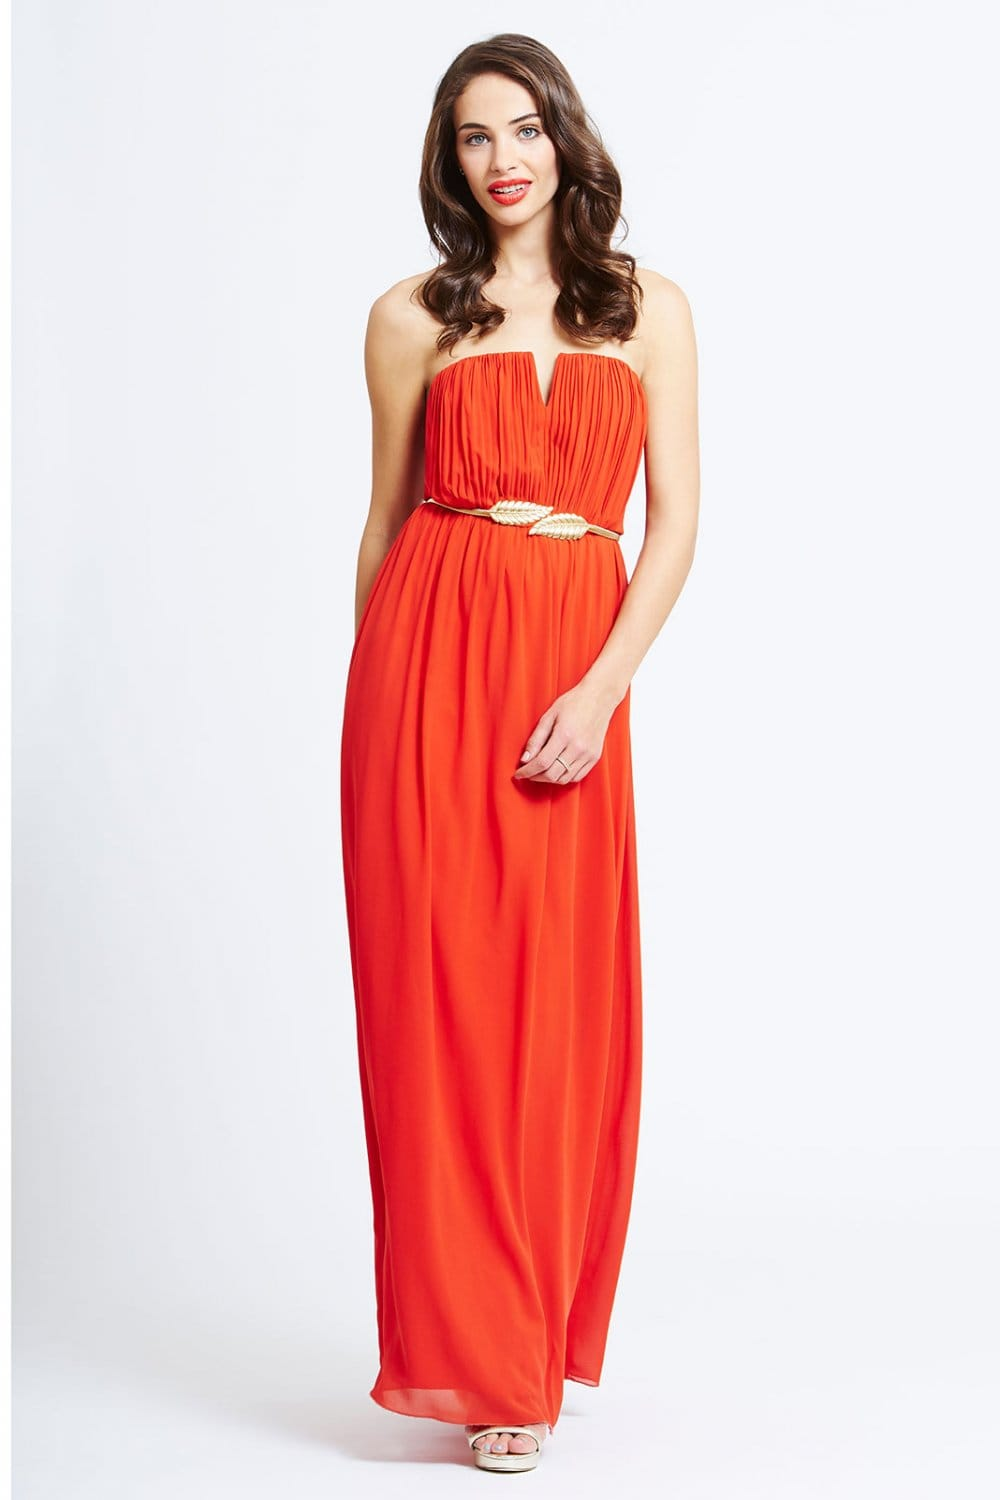 Shop for orange maxi dress online at Target. Free shipping on purchases over $35 and save 5% every day with your Target REDcard.